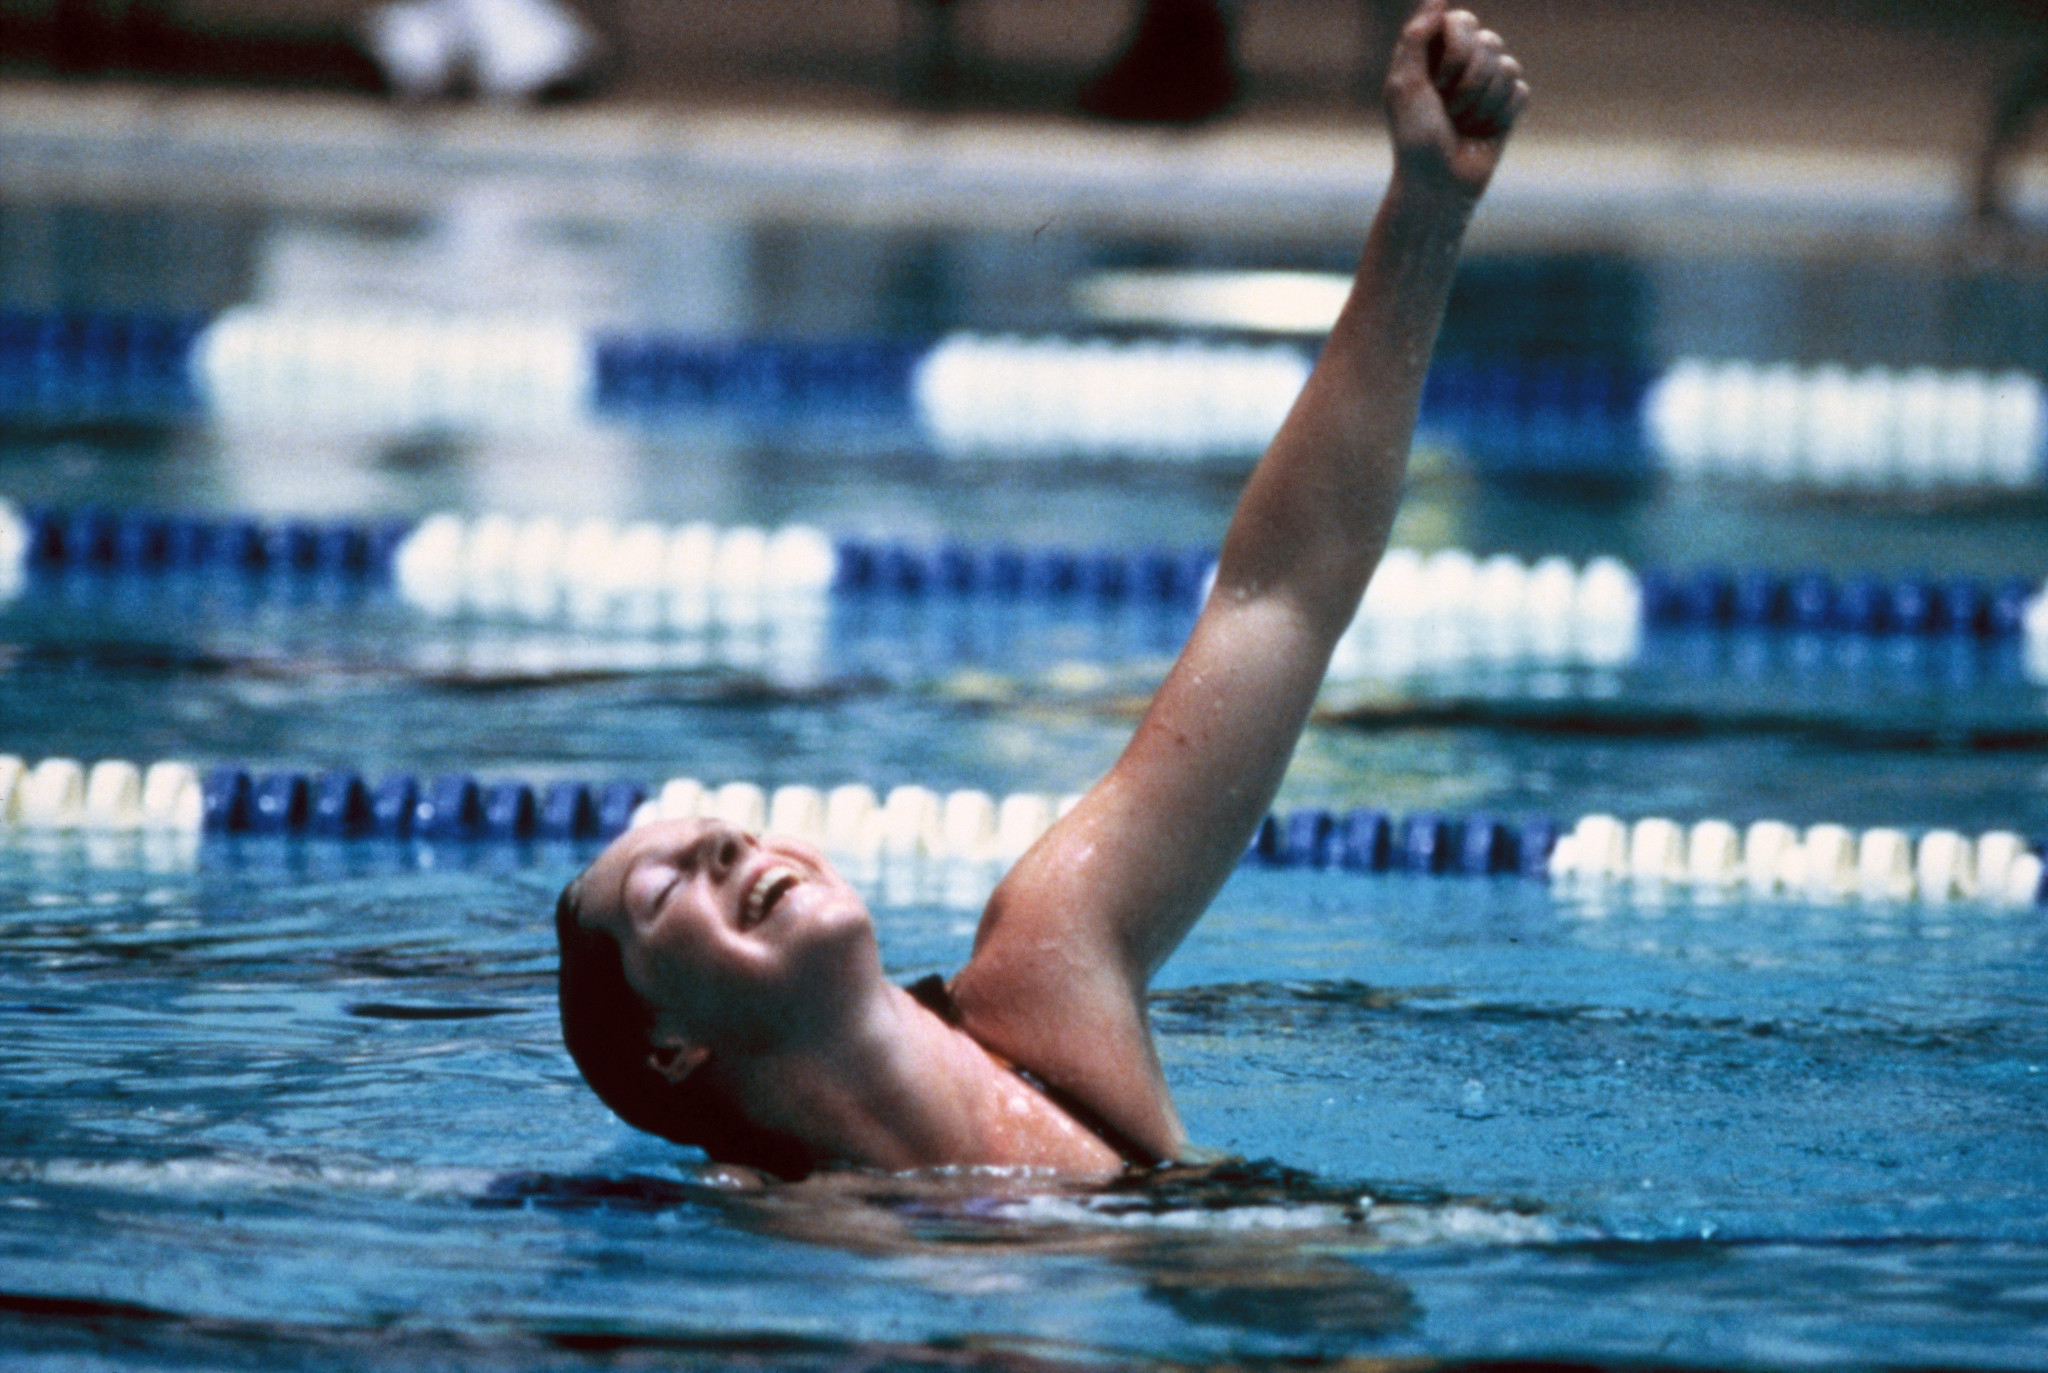 Michelle Ford won the women's 800m freestyle Olympic gold medal in 1980 ©Michelle Ford